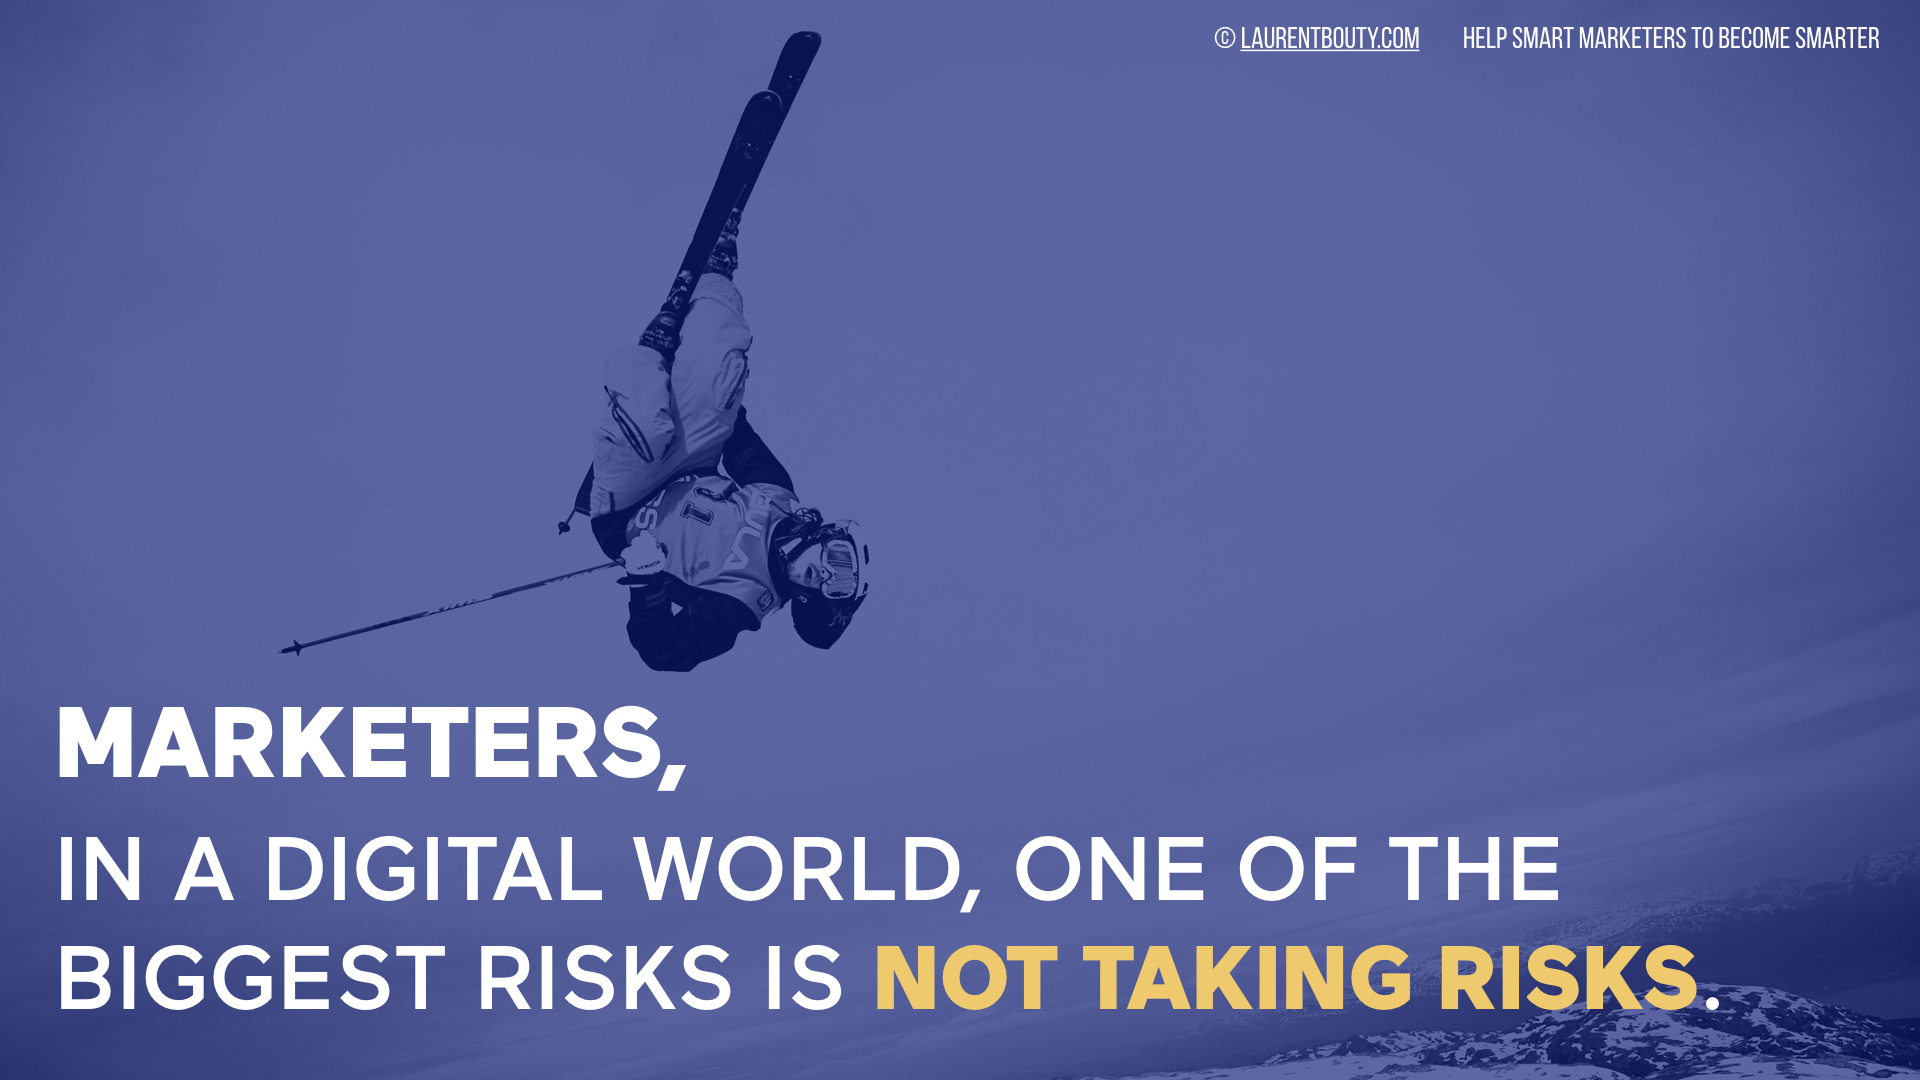 Marketers, In a Digital World, One of the Biggest Risks Is Not Taking Risks